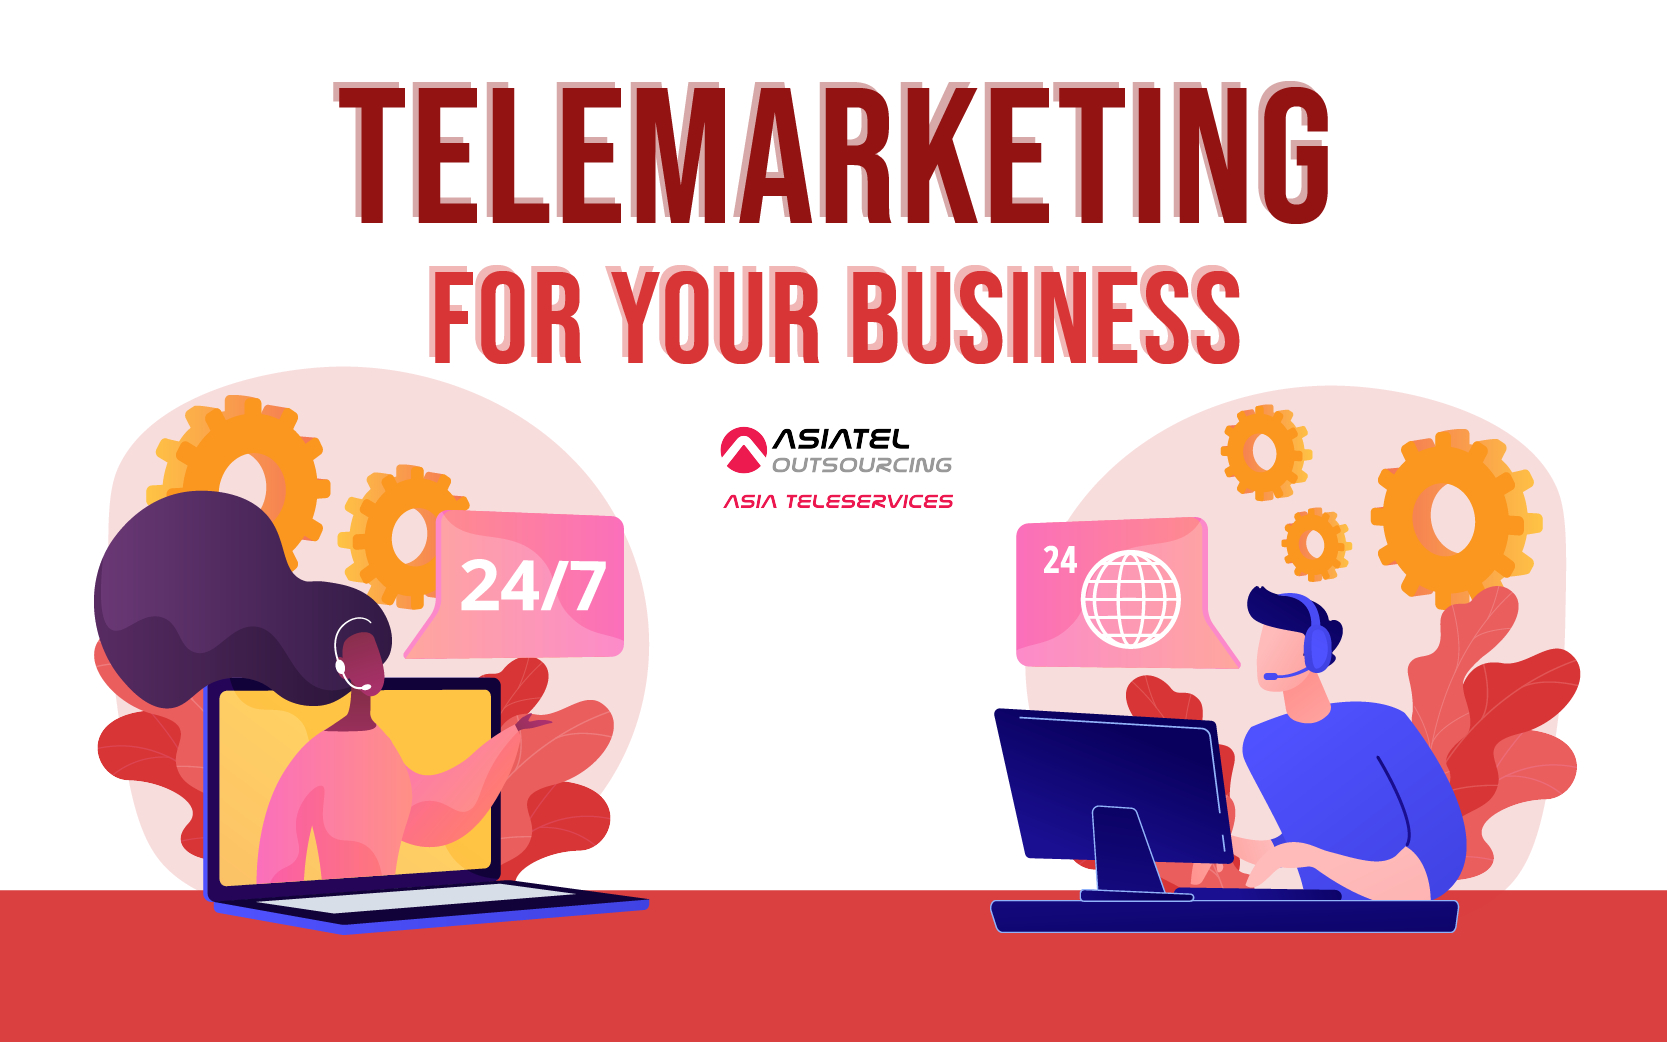 Telemarketing For Your Business